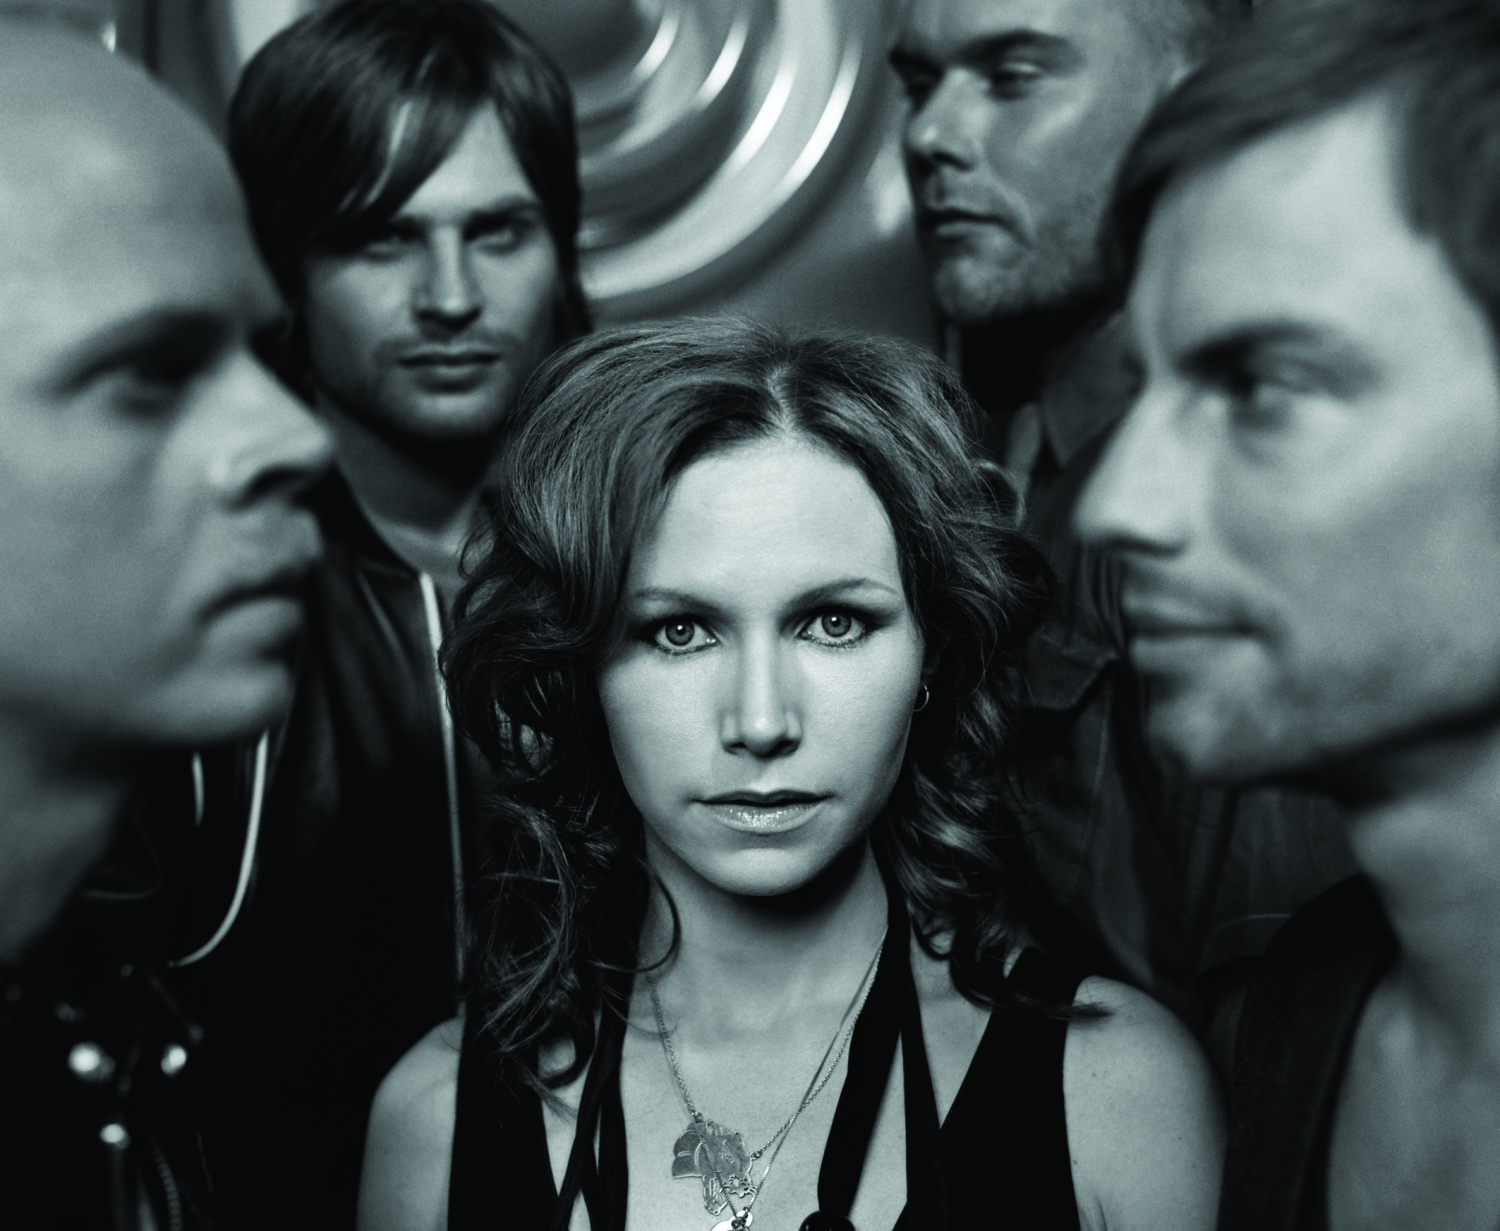 High Resolution Wallpaper | The Cardigans 1500x1231 px